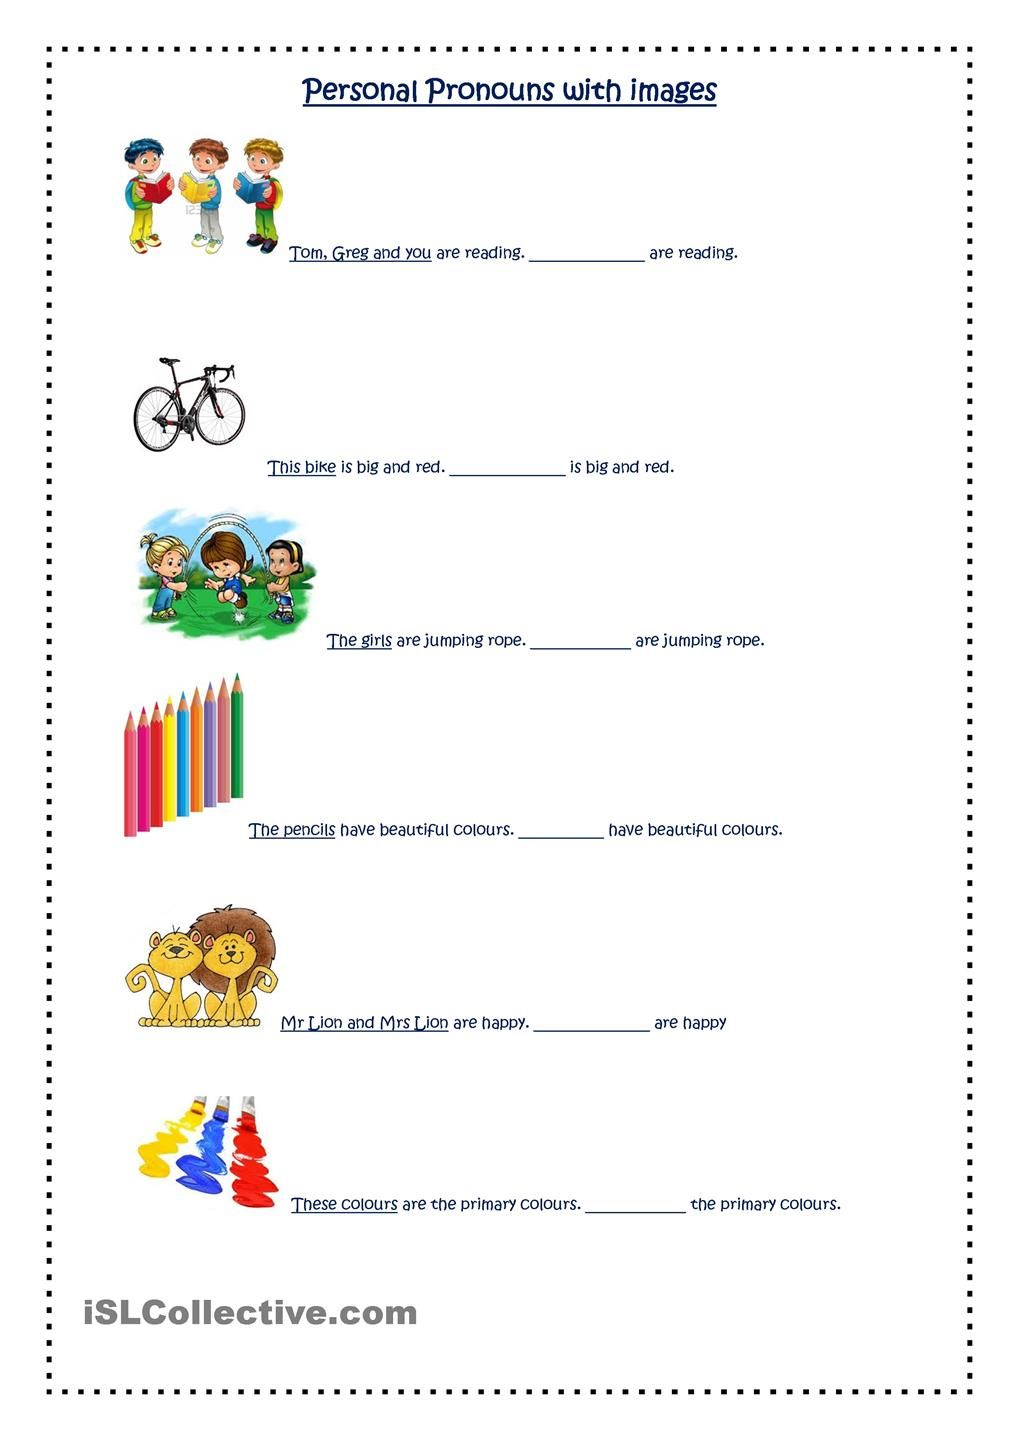 Personal Pronouns With Images Personal Pronouns Personal Pronouns Worksheets Pronoun [ 1440 x 1018 Pixel ]